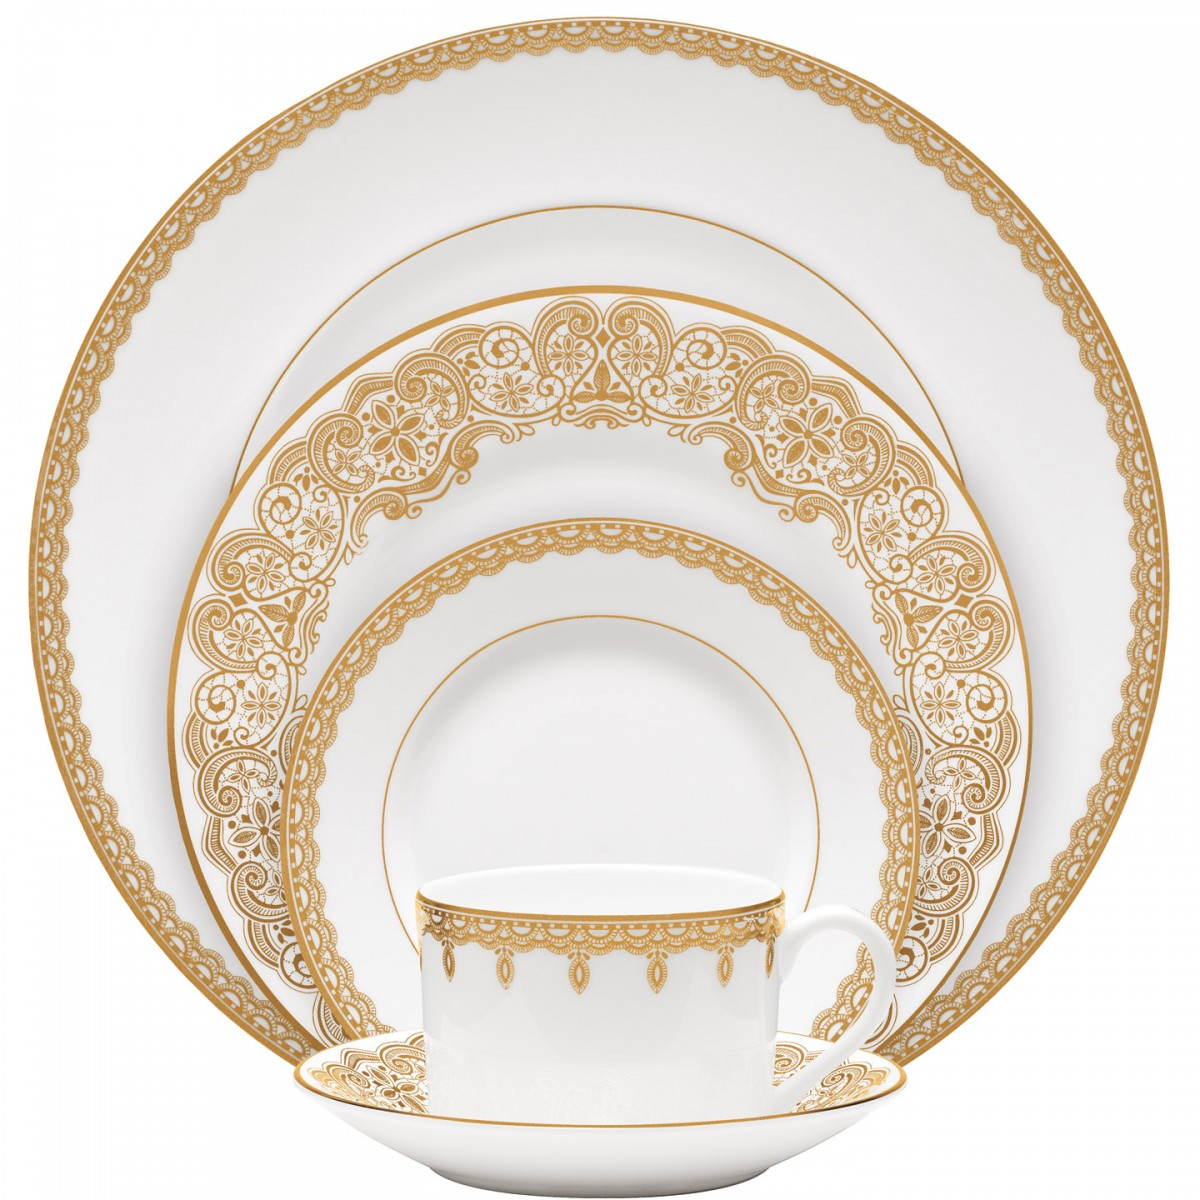 waterford-lismore-lace-gold-5-piece-place-setting.jpg